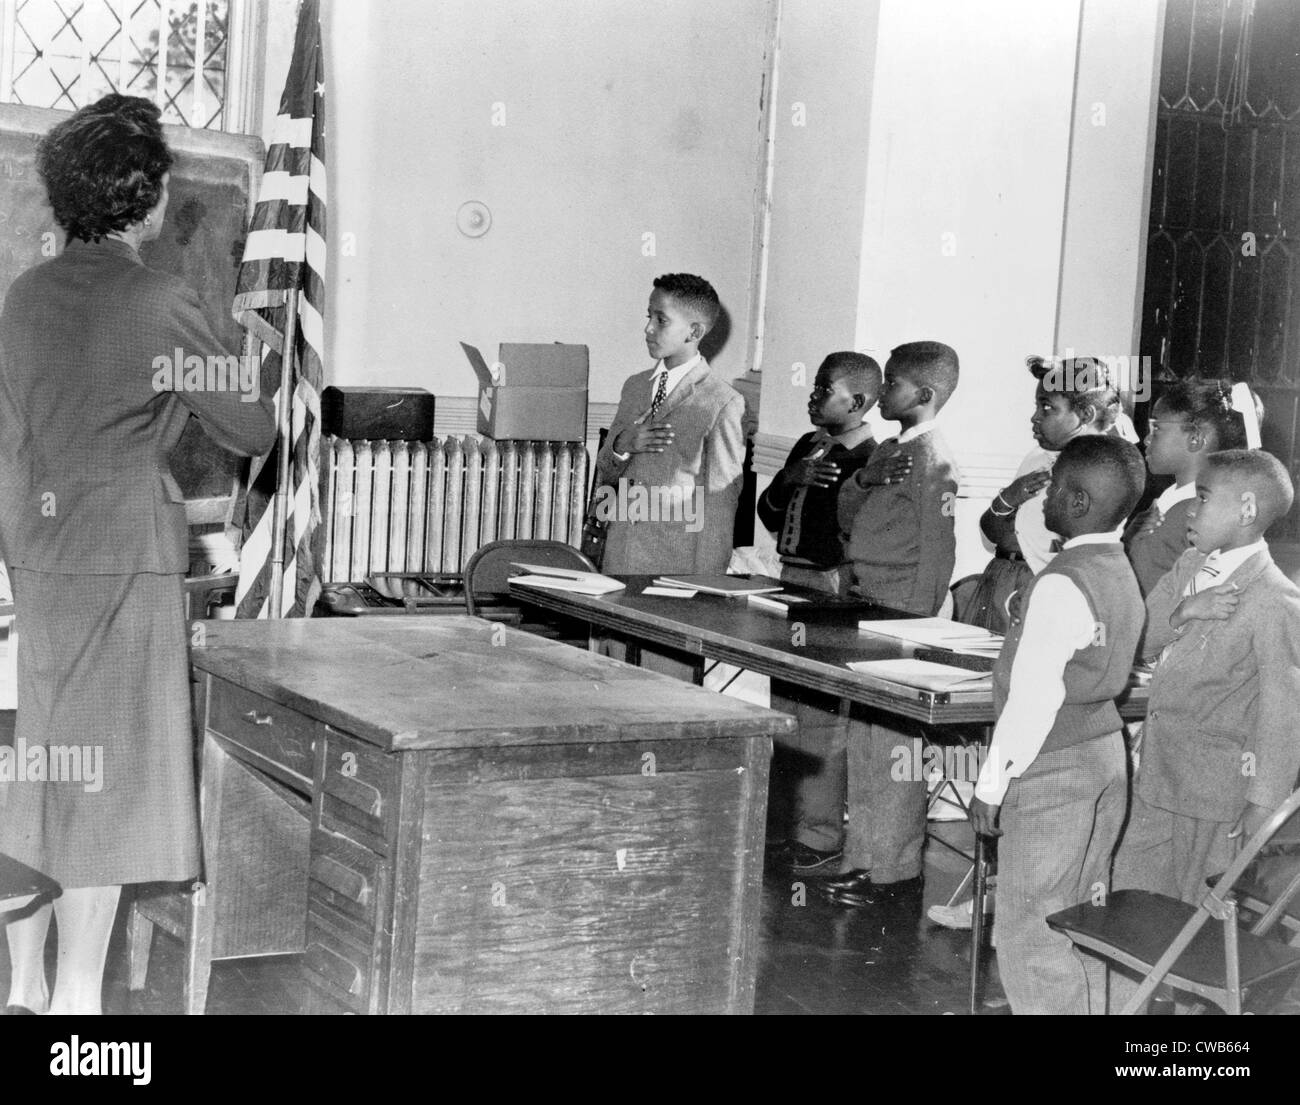 Mrs. Claire Cumberbatch, leader of the Bedford-Stuyvesant group protesting alleged 'segregated' school, - Stock Image